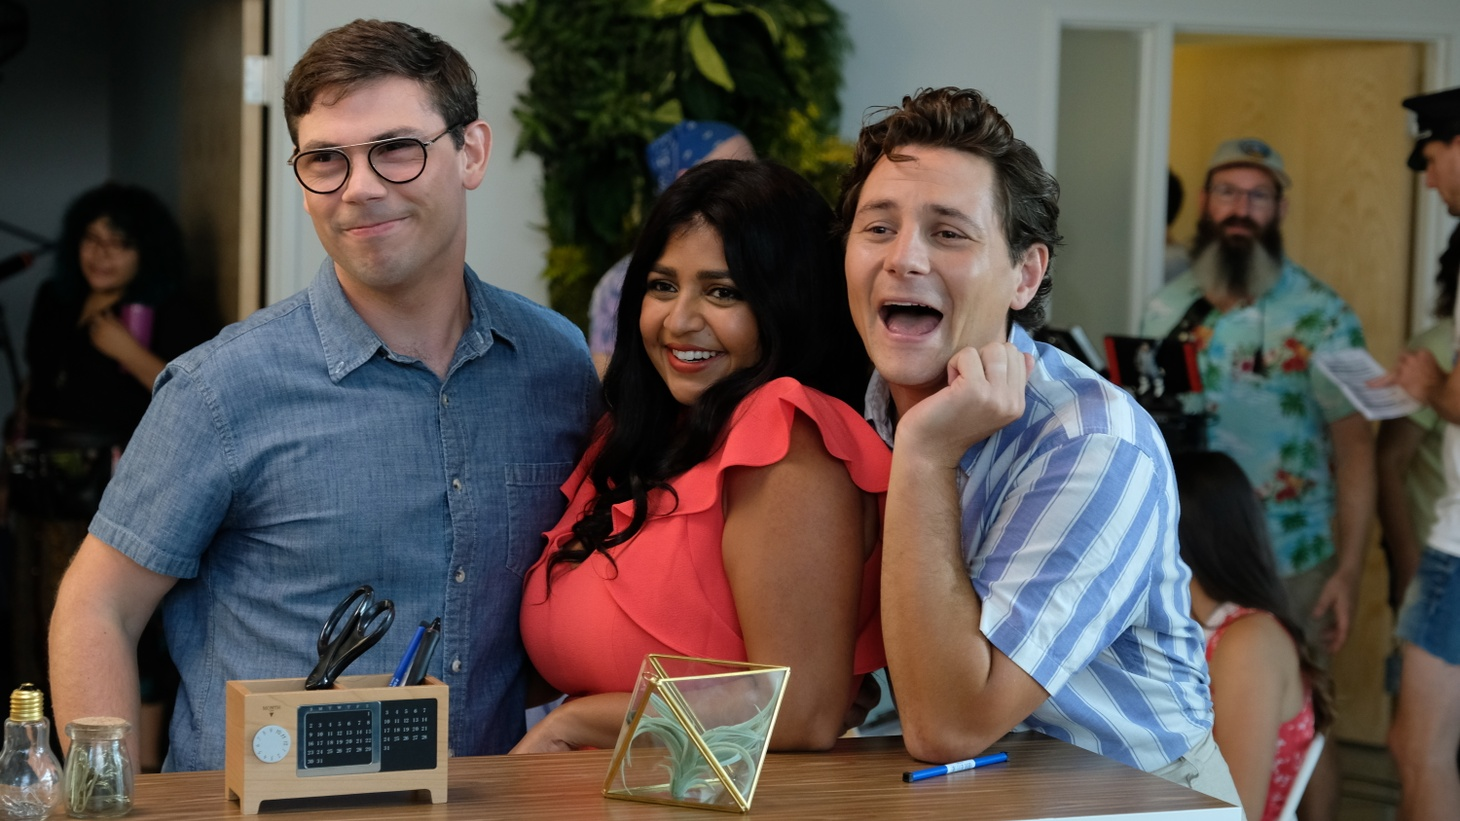 Ryan O'Connell, Punam Patel and Augustus Prew in the Netflix series 'Special.'